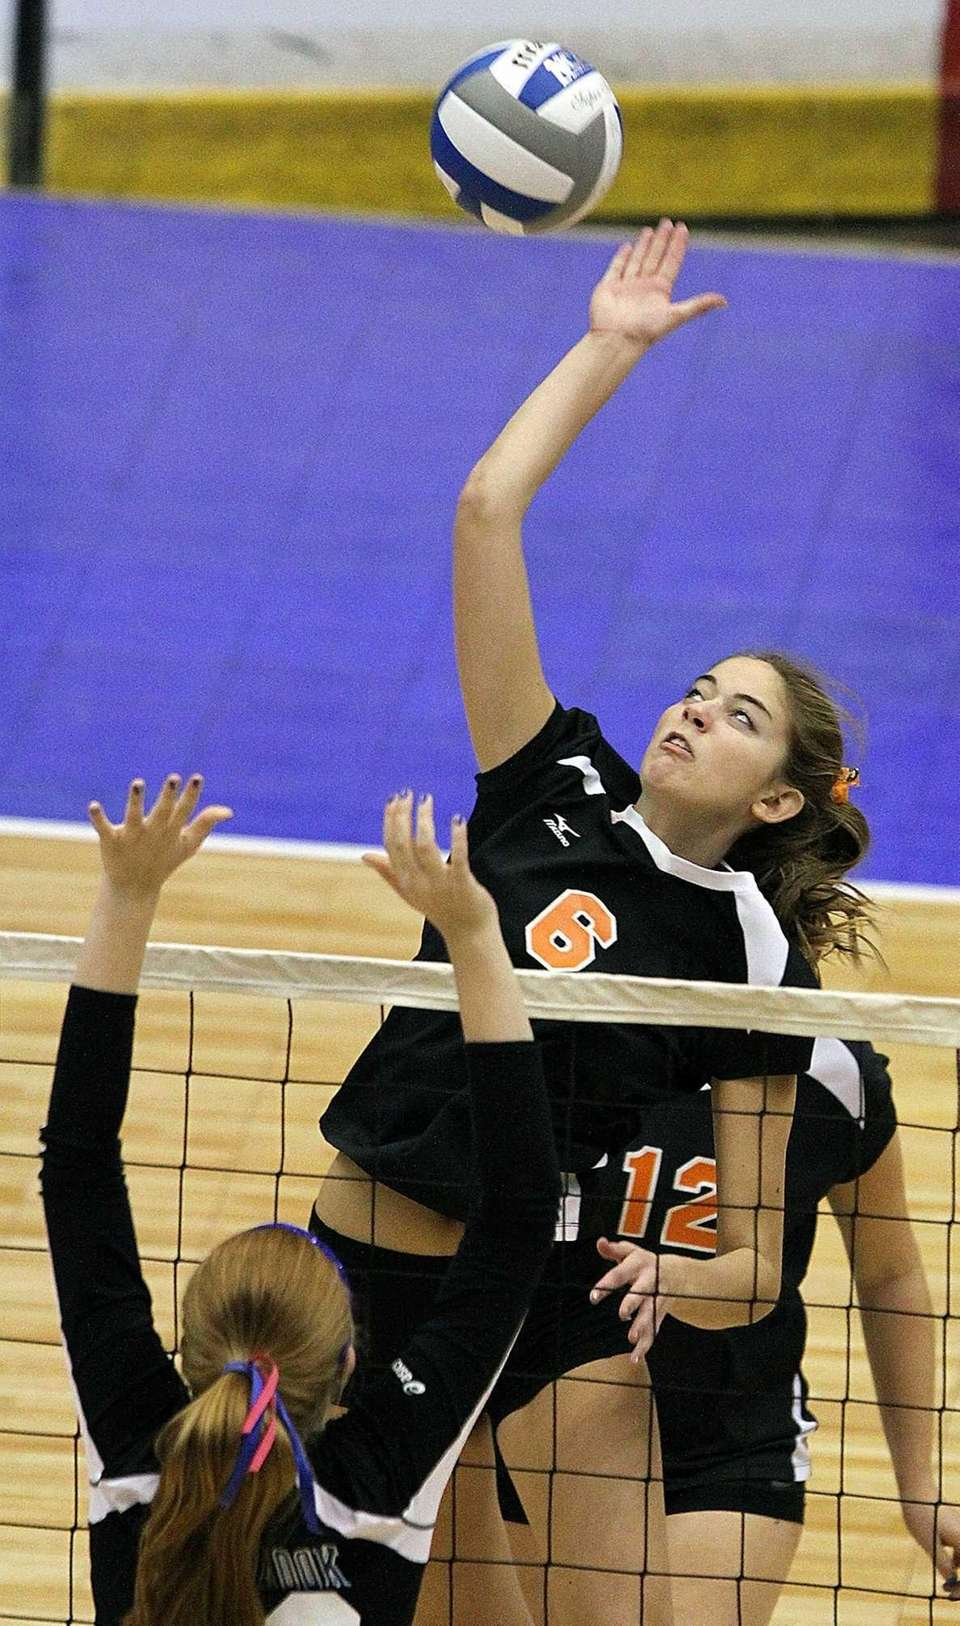 Babylon's Margot Zamet hits the ball during the